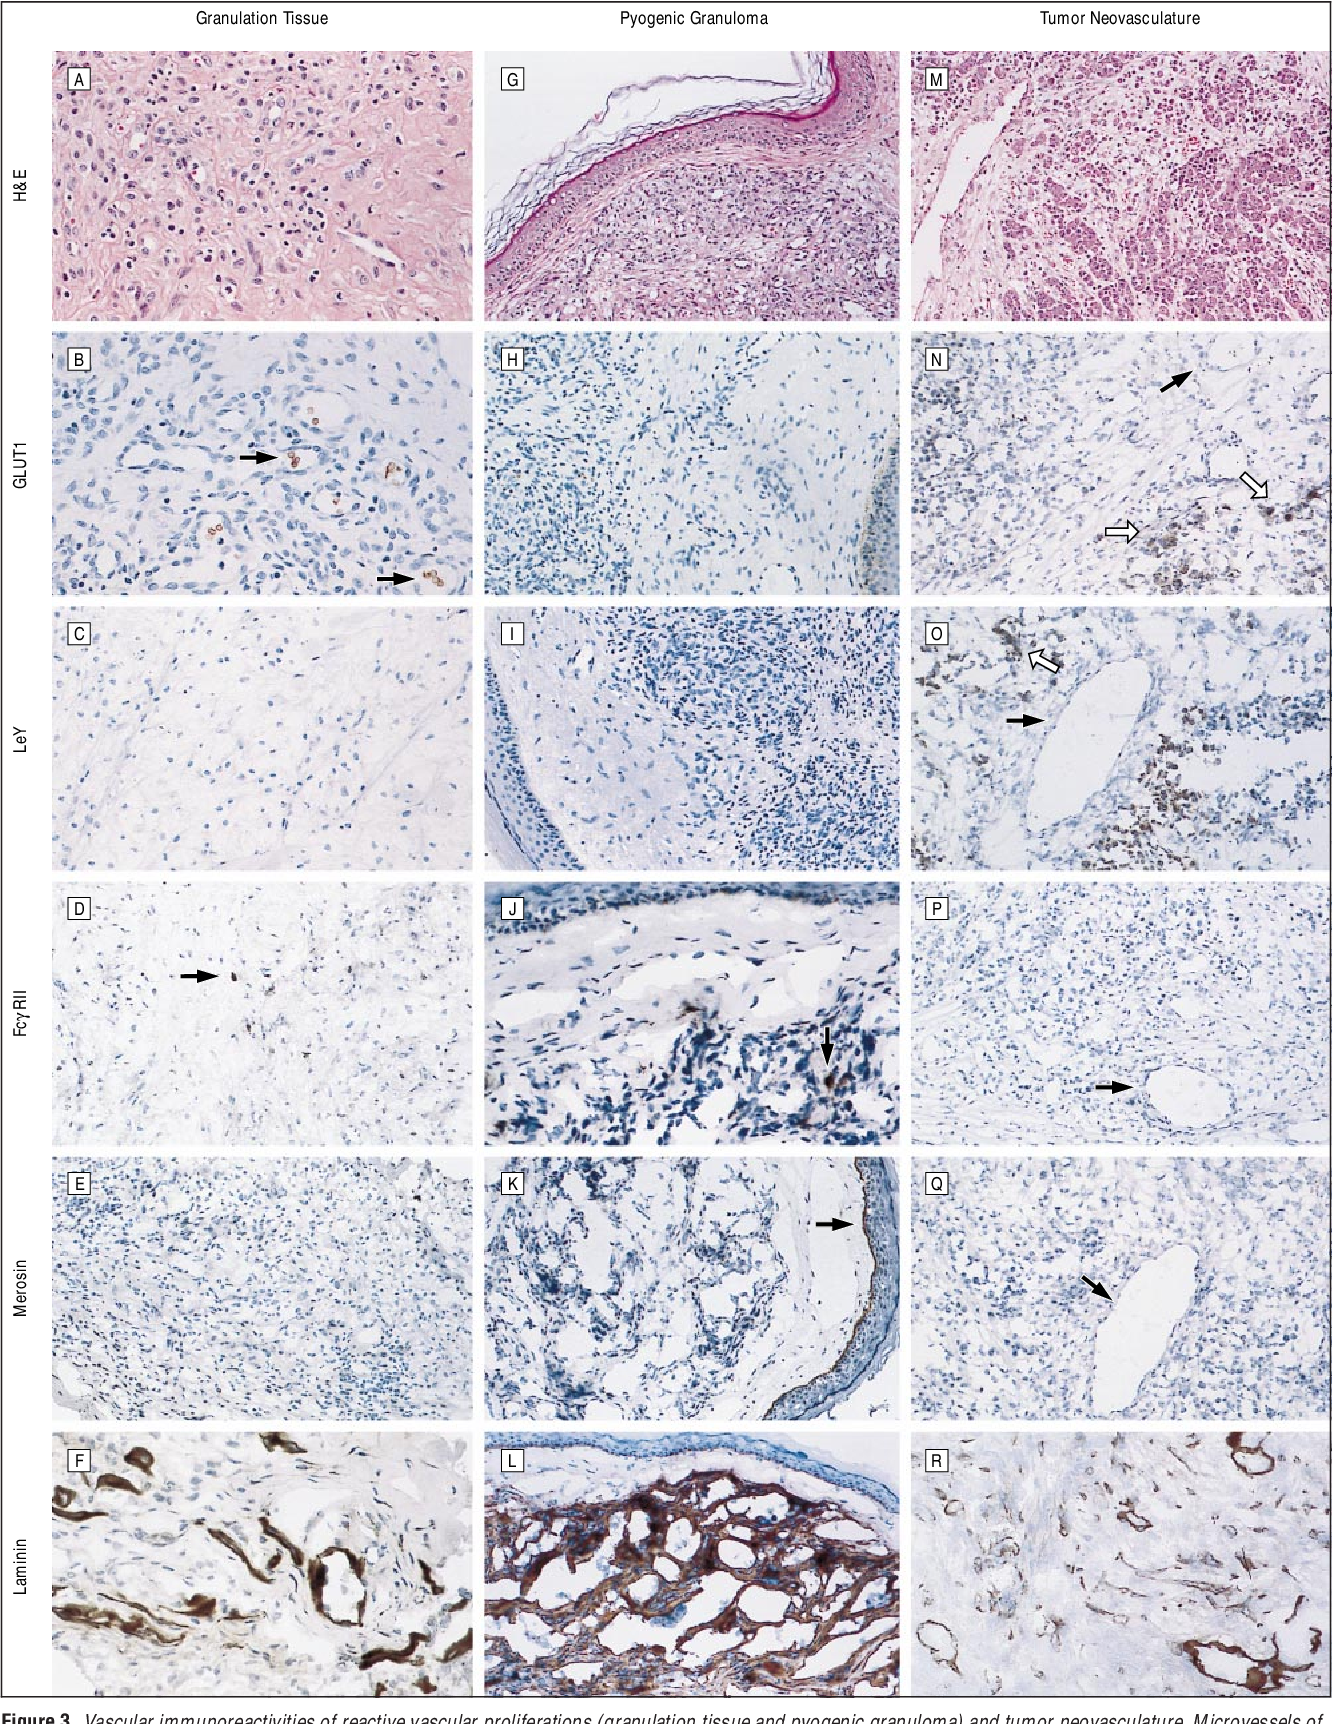 Figure 3. Vascular immunoreactivities of reactive vascular proliferations (granulation tissue and pyogenic granuloma) and tumor neovasculature. Microvessels of ischial decubitus ulcer granulation tissue (A-F), of an eruptive pyogenic granuloma from the cheek of an 8-year-old girl (G-L), and of a renal medullary carcinoma metastatic to ovary (M-R) were immunonegative for GLUT1 (B; H; and N, solid arrow), Lewis Y antigen (LeY) (C; I; and O, solid arrow), FcgRII (D; J; and P, arrow), and merosin (E; K; and Q, arrow). There was normal antigenicity for laminin in vascular basement membranes (C, L, R), for merosin in epidermal basement membranes (K, arrow), for CD31 in endothelia (not shown), for GLUT1 in erythrocytes (B, arrows; and H) and in keratinocytes (H), and for FcgRII in tissue macrophages (D and J, arrows). Carcinoma cells were focally immunopositive for GLUT1 (N, open arrows) and LeY (O, open arrow). H&E indicates hematoxylin-eosin. Original magnifications 3200 (C-E, G-O, Q, R) or 3400 (A, B, F, P).